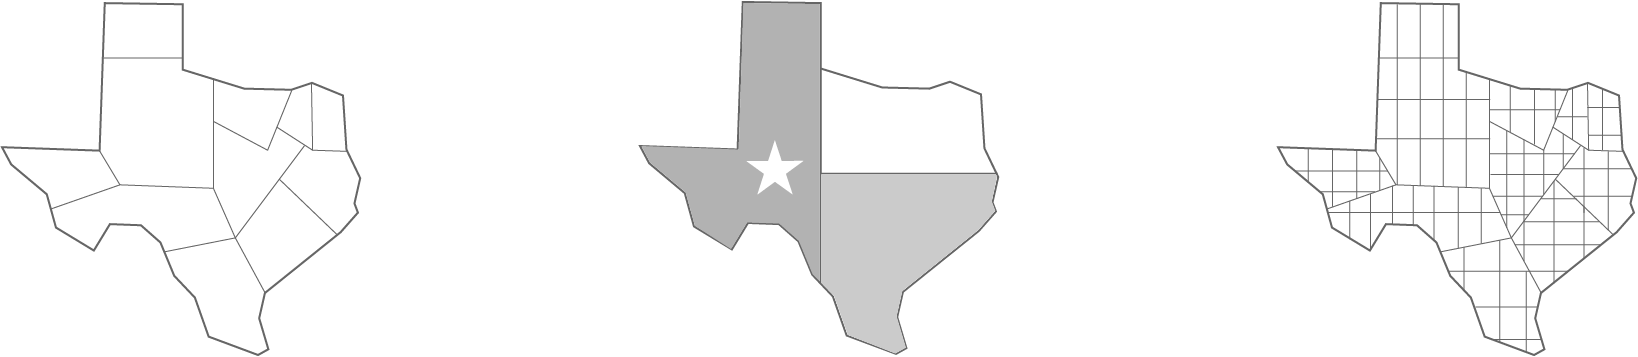 Representation of Tx carved into districts